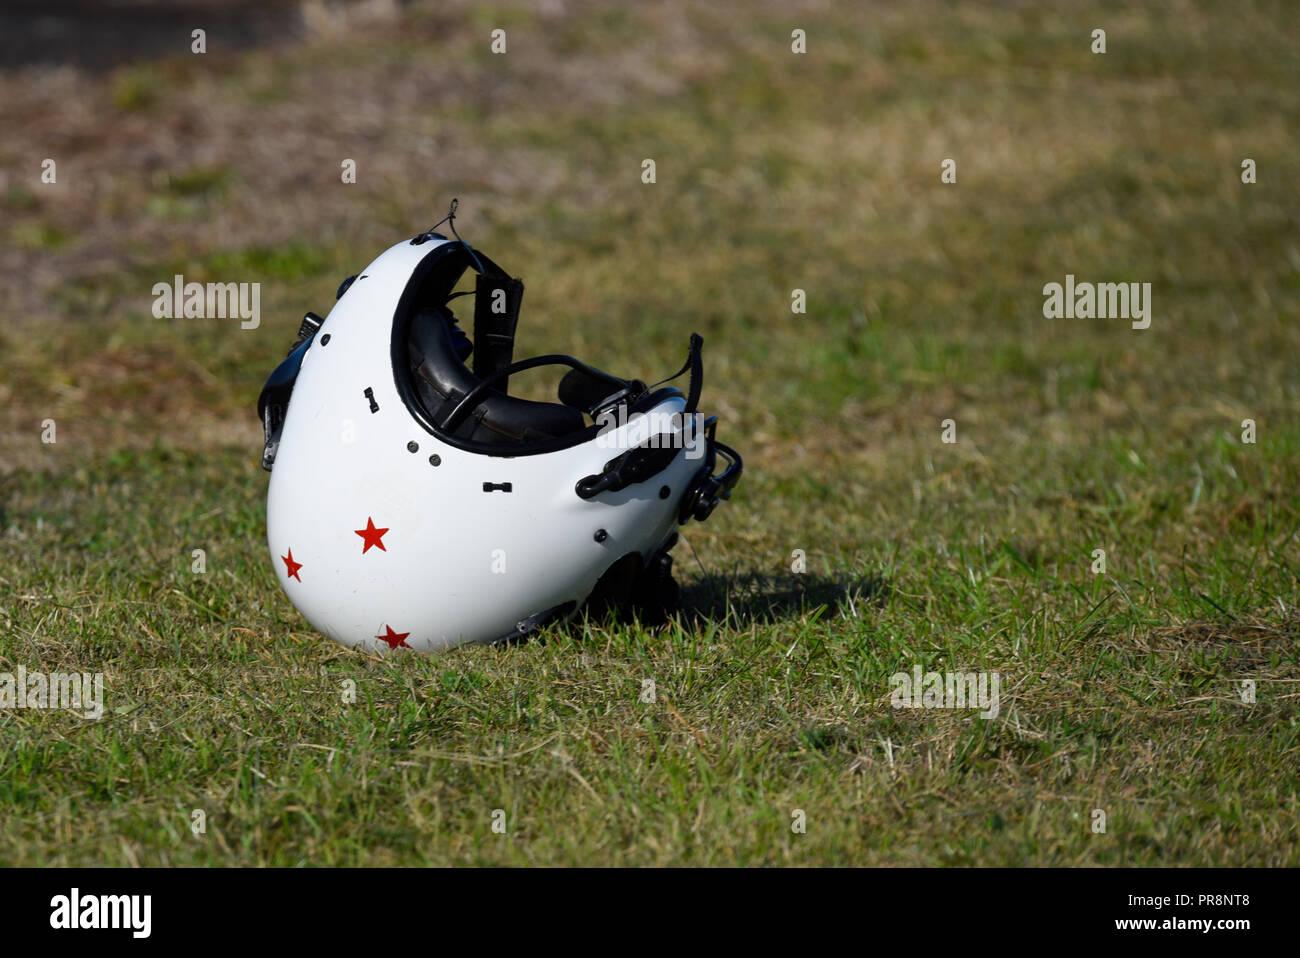 Pilot's helmet sitting, laying on the ground before or after a flight. Flying helmet in isolation. Isolated. Russian red stairs. Flight helmet alone - Stock Image